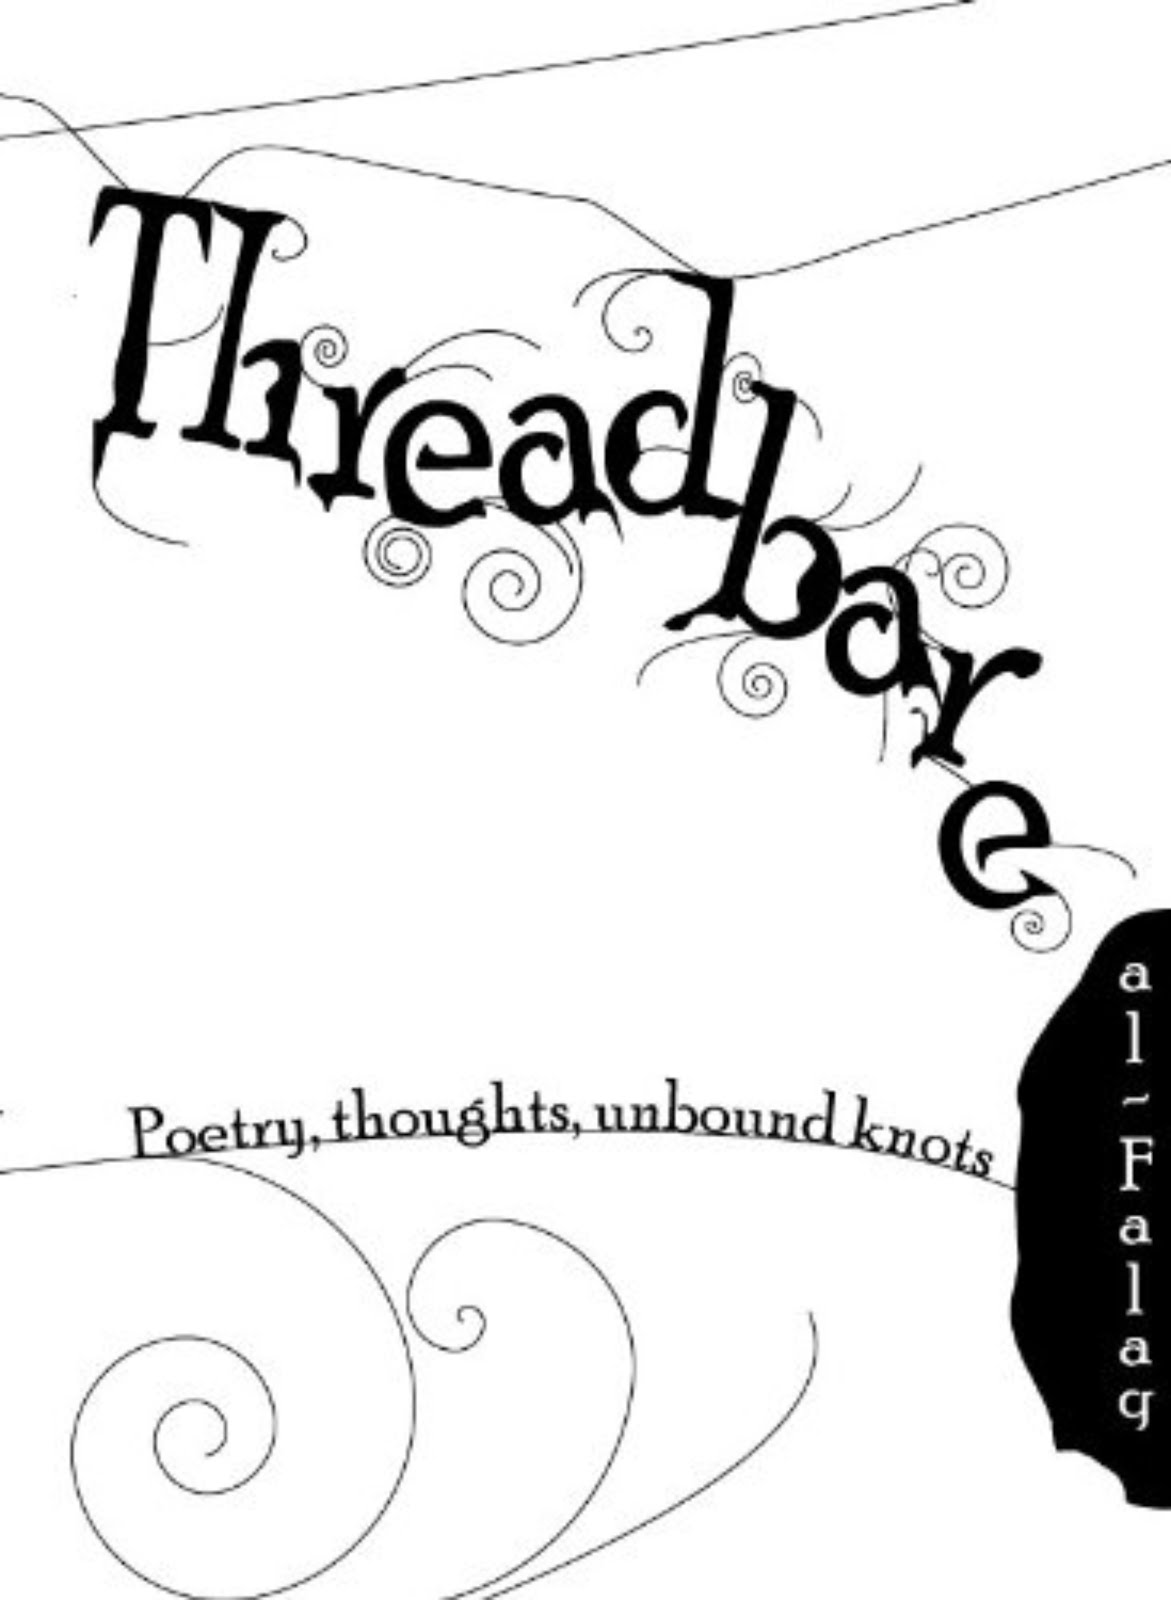 Threadbare: Available on Amazon